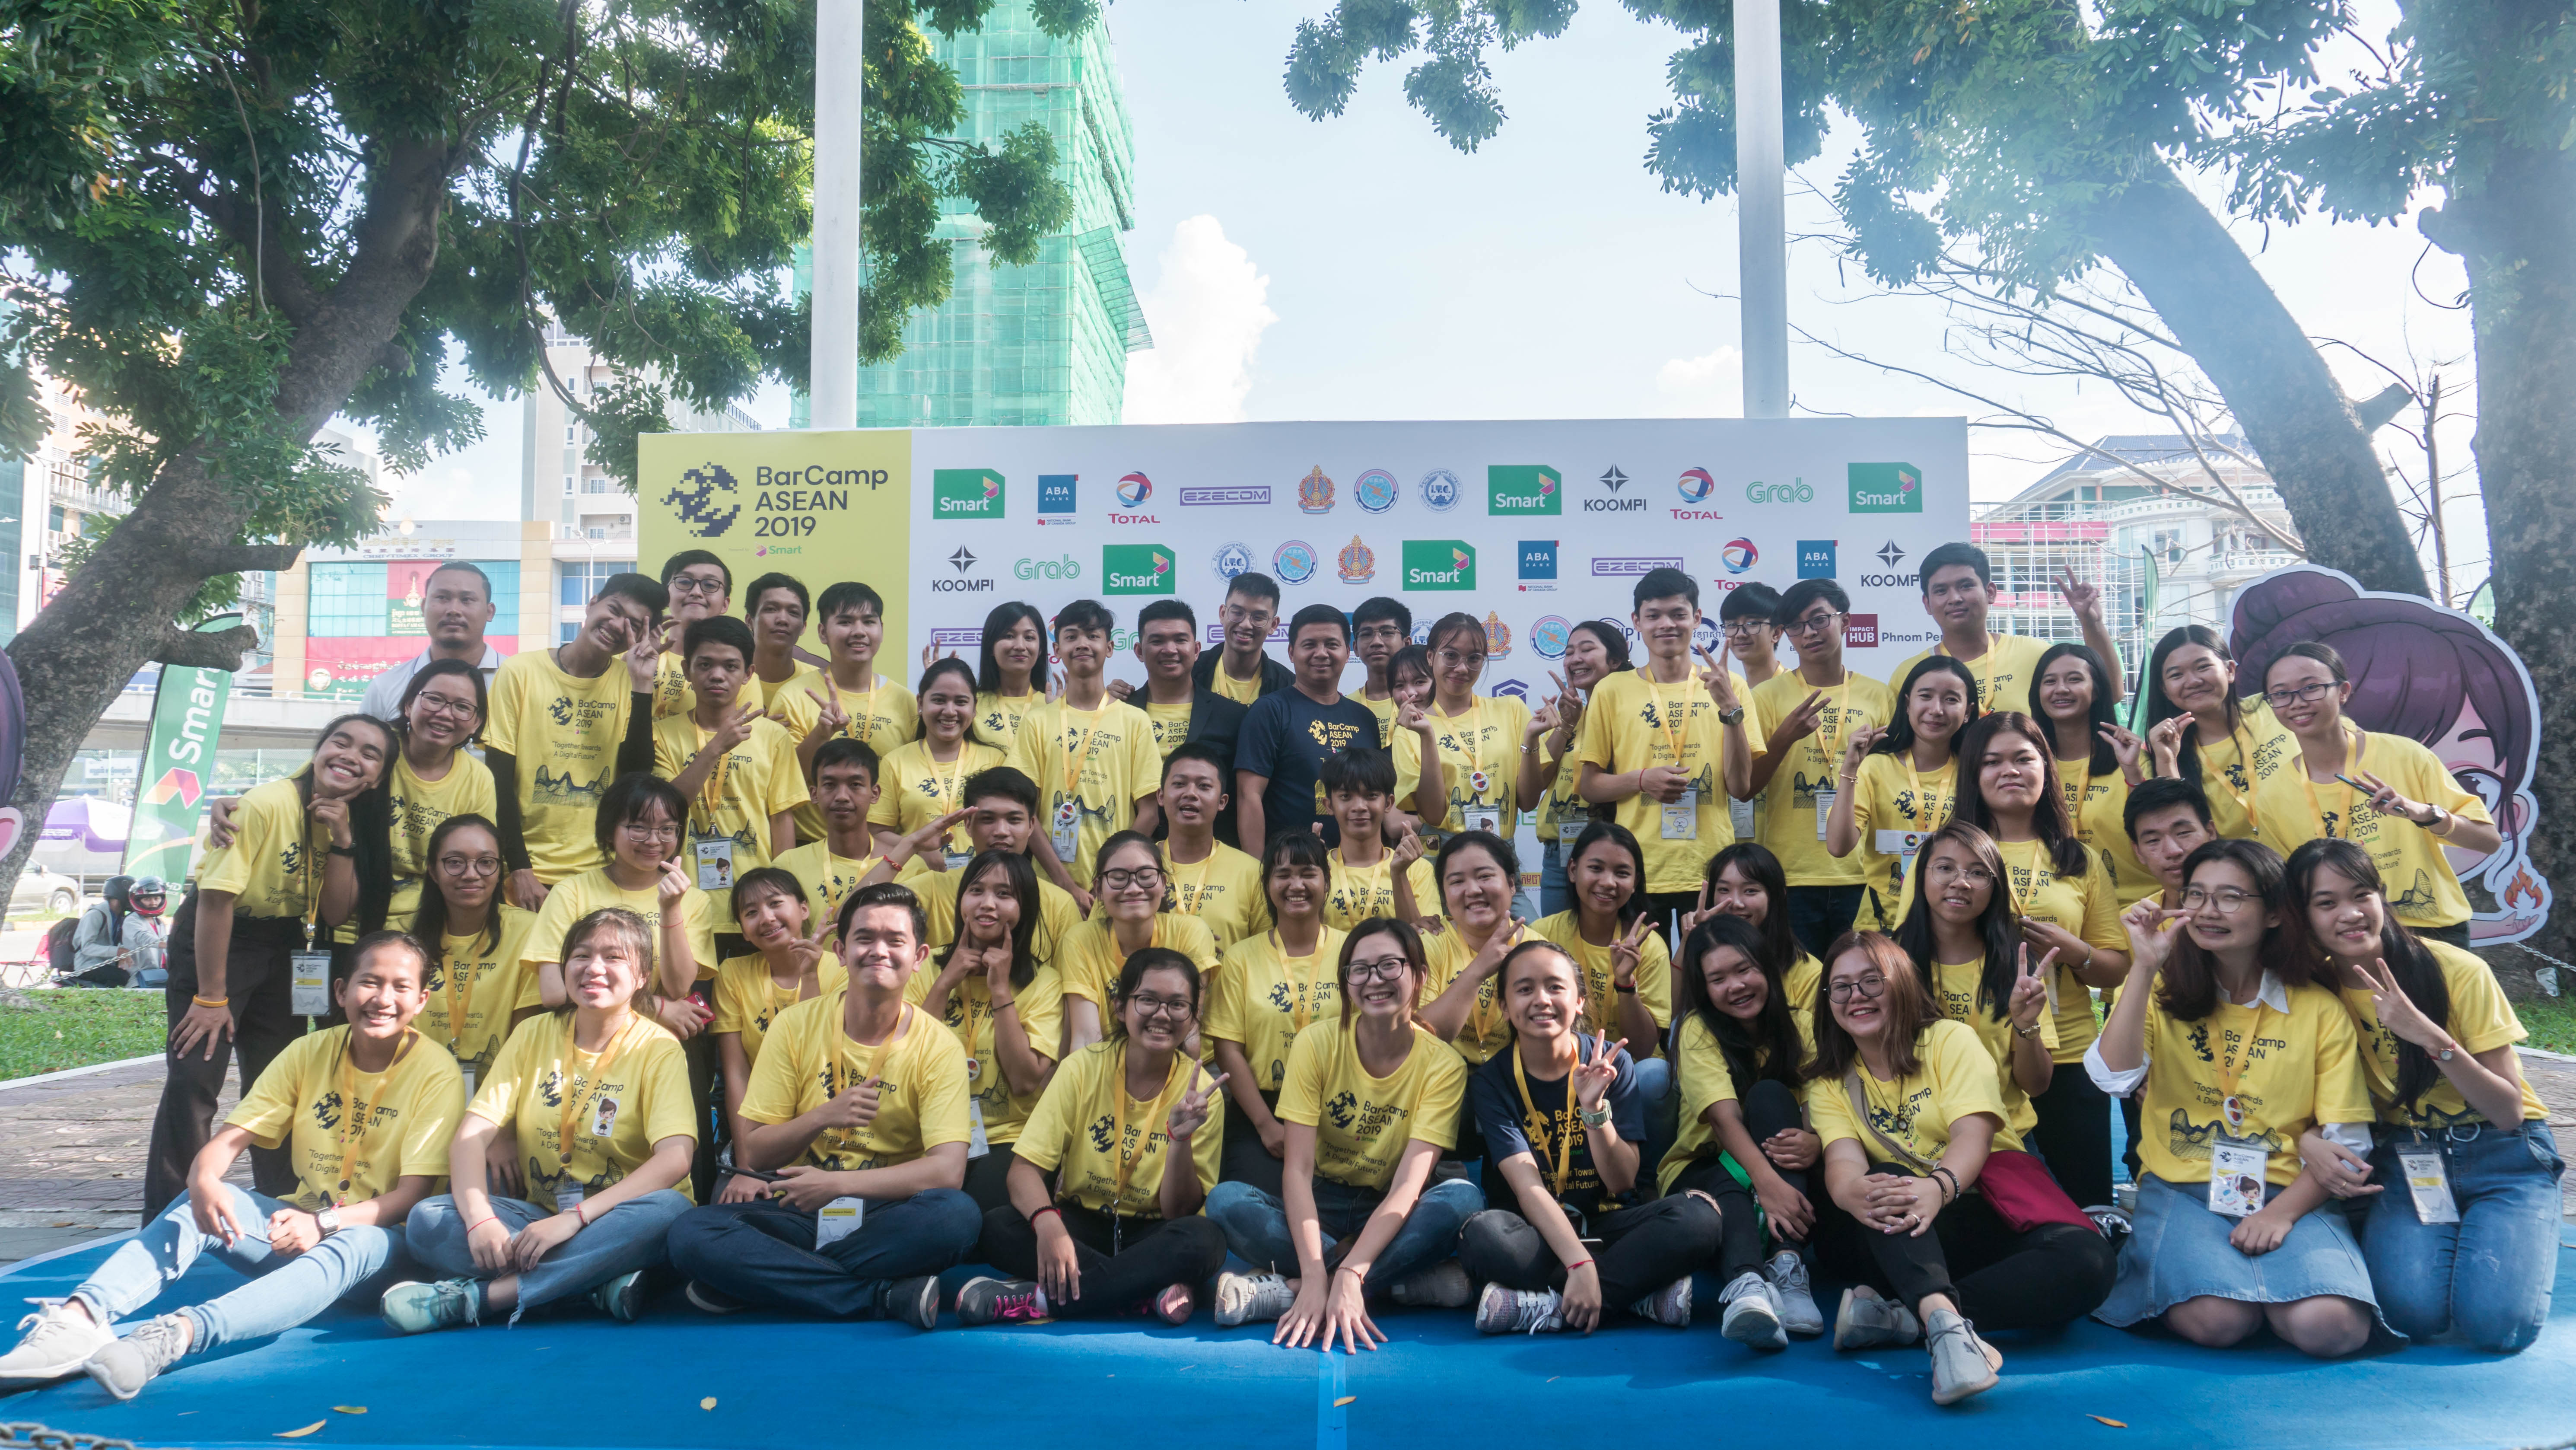 BarCamp ASEAN 2019 Brings over 5,000 Tech Enthusiasts Together